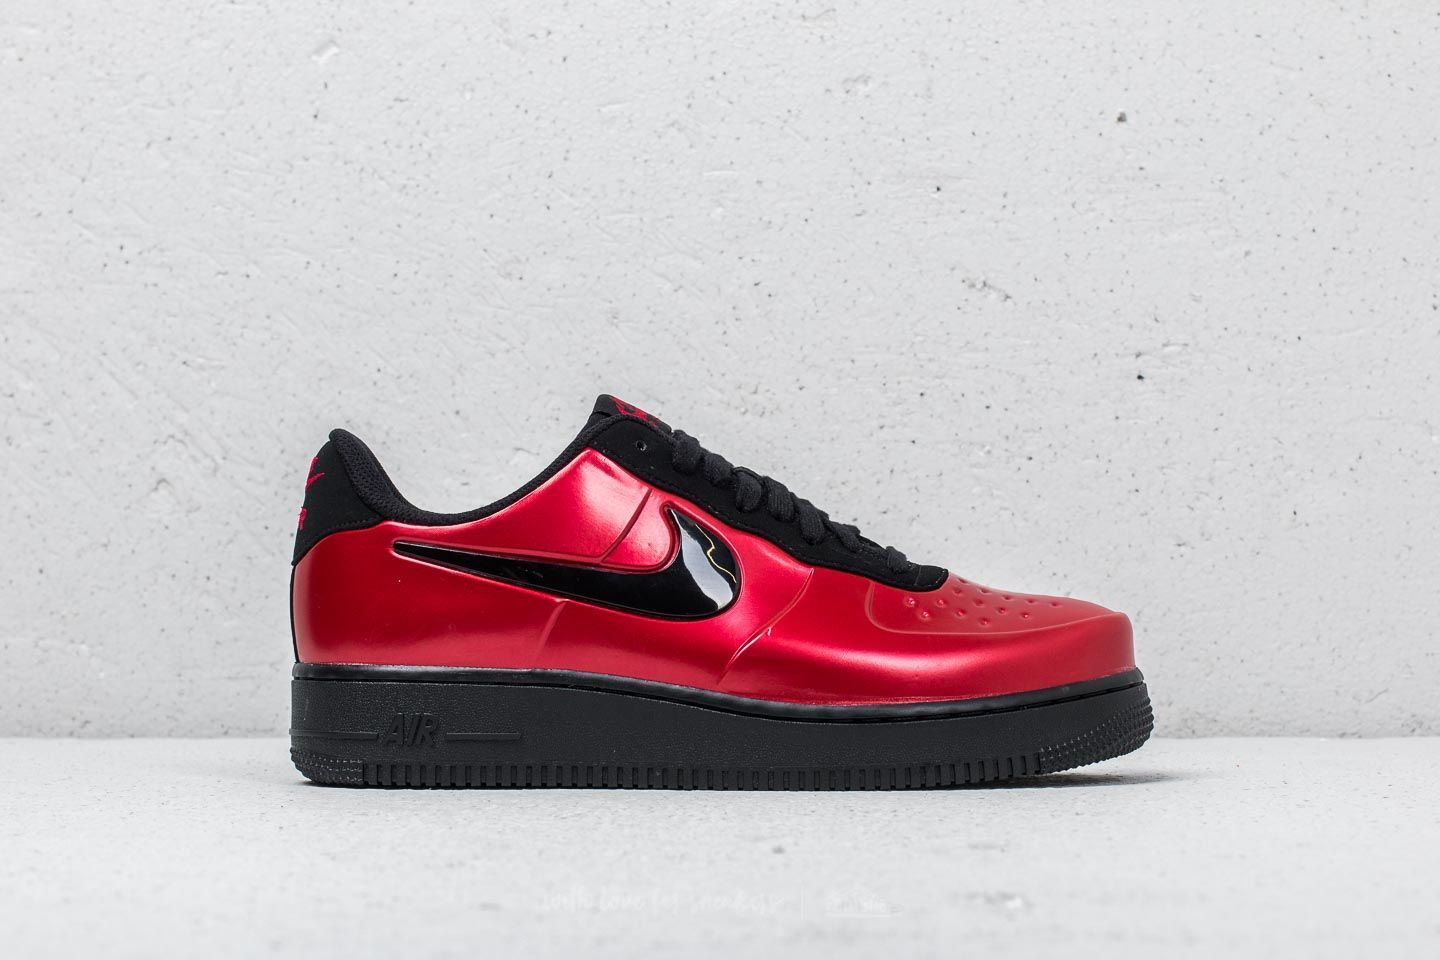 size 40 fbe2d 0c8f7 Nike Air Force 1 Foamposite Pro Cup Gym Red/ Black ...